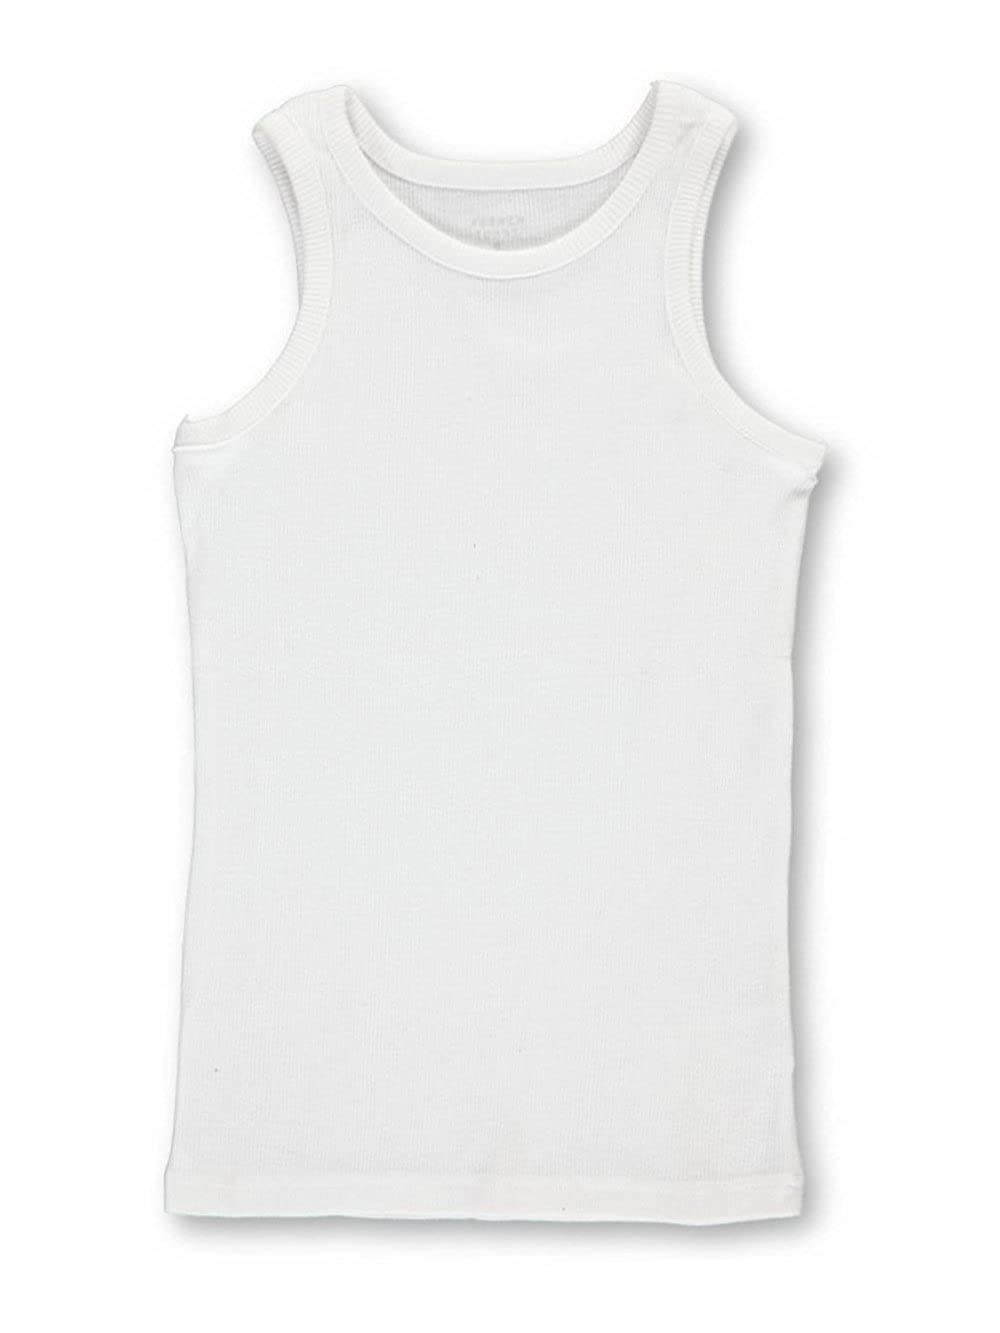 French Toast Big Boys' Ribbed Tank Top 14-16